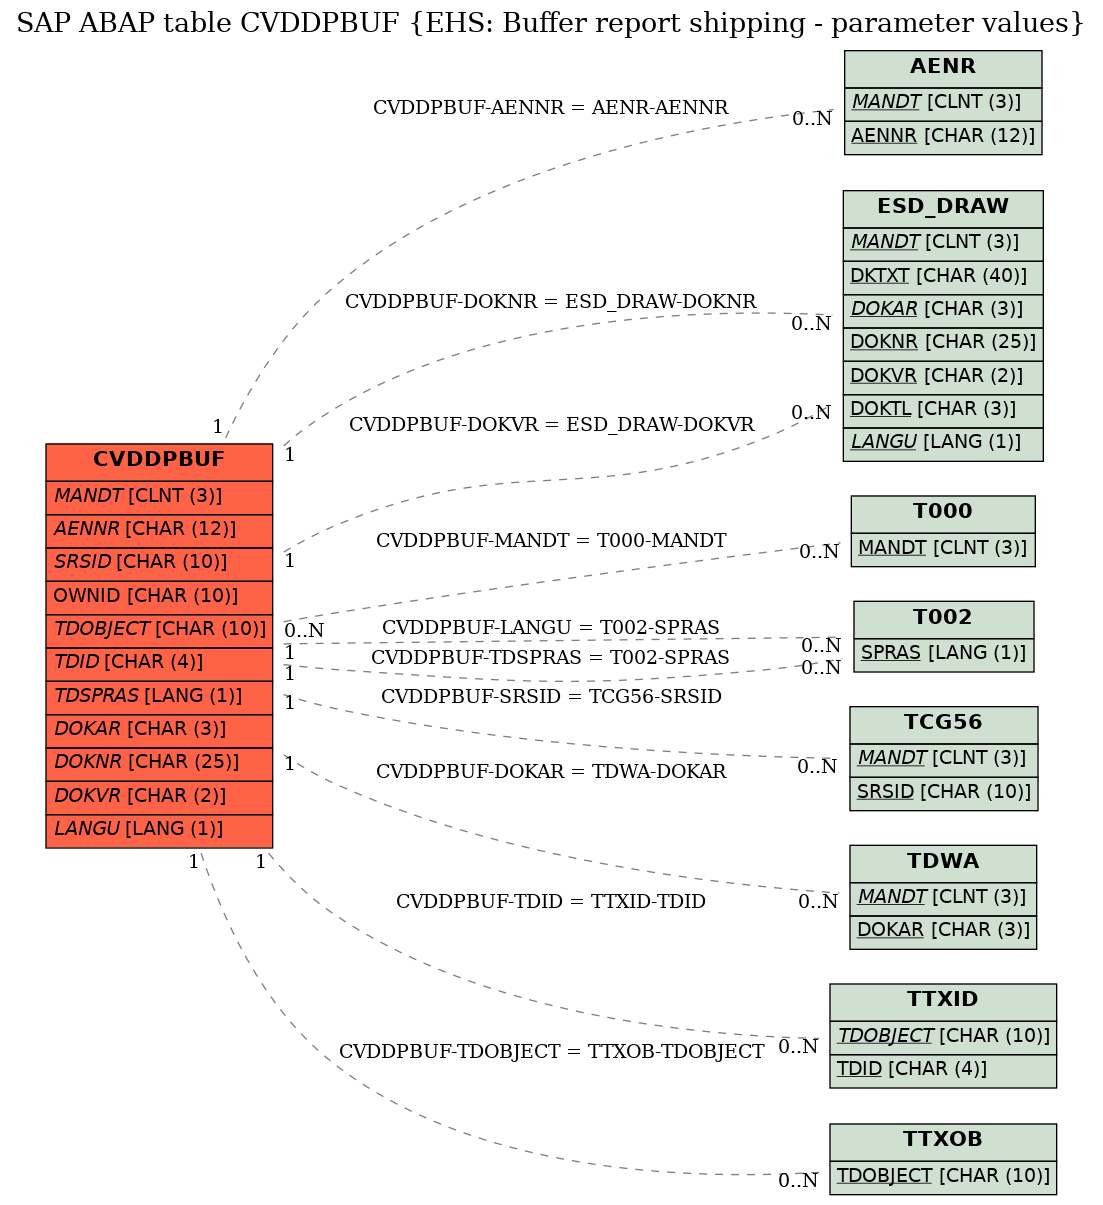 E-R Diagram for table CVDDPBUF (EHS: Buffer report shipping - parameter values)